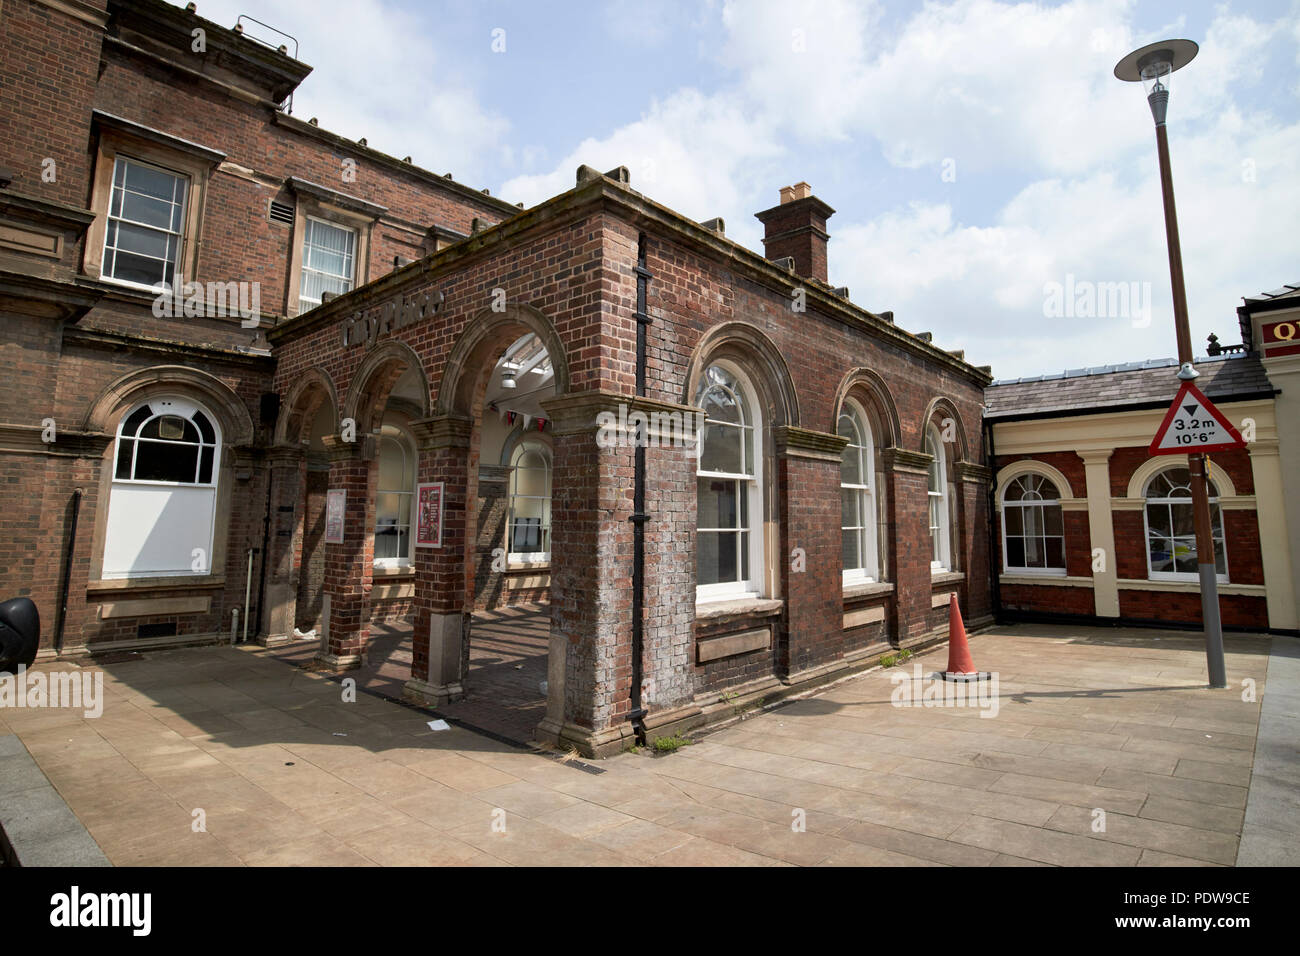 Chester railway station entrance to city place chester cheshire england uk - Stock Image